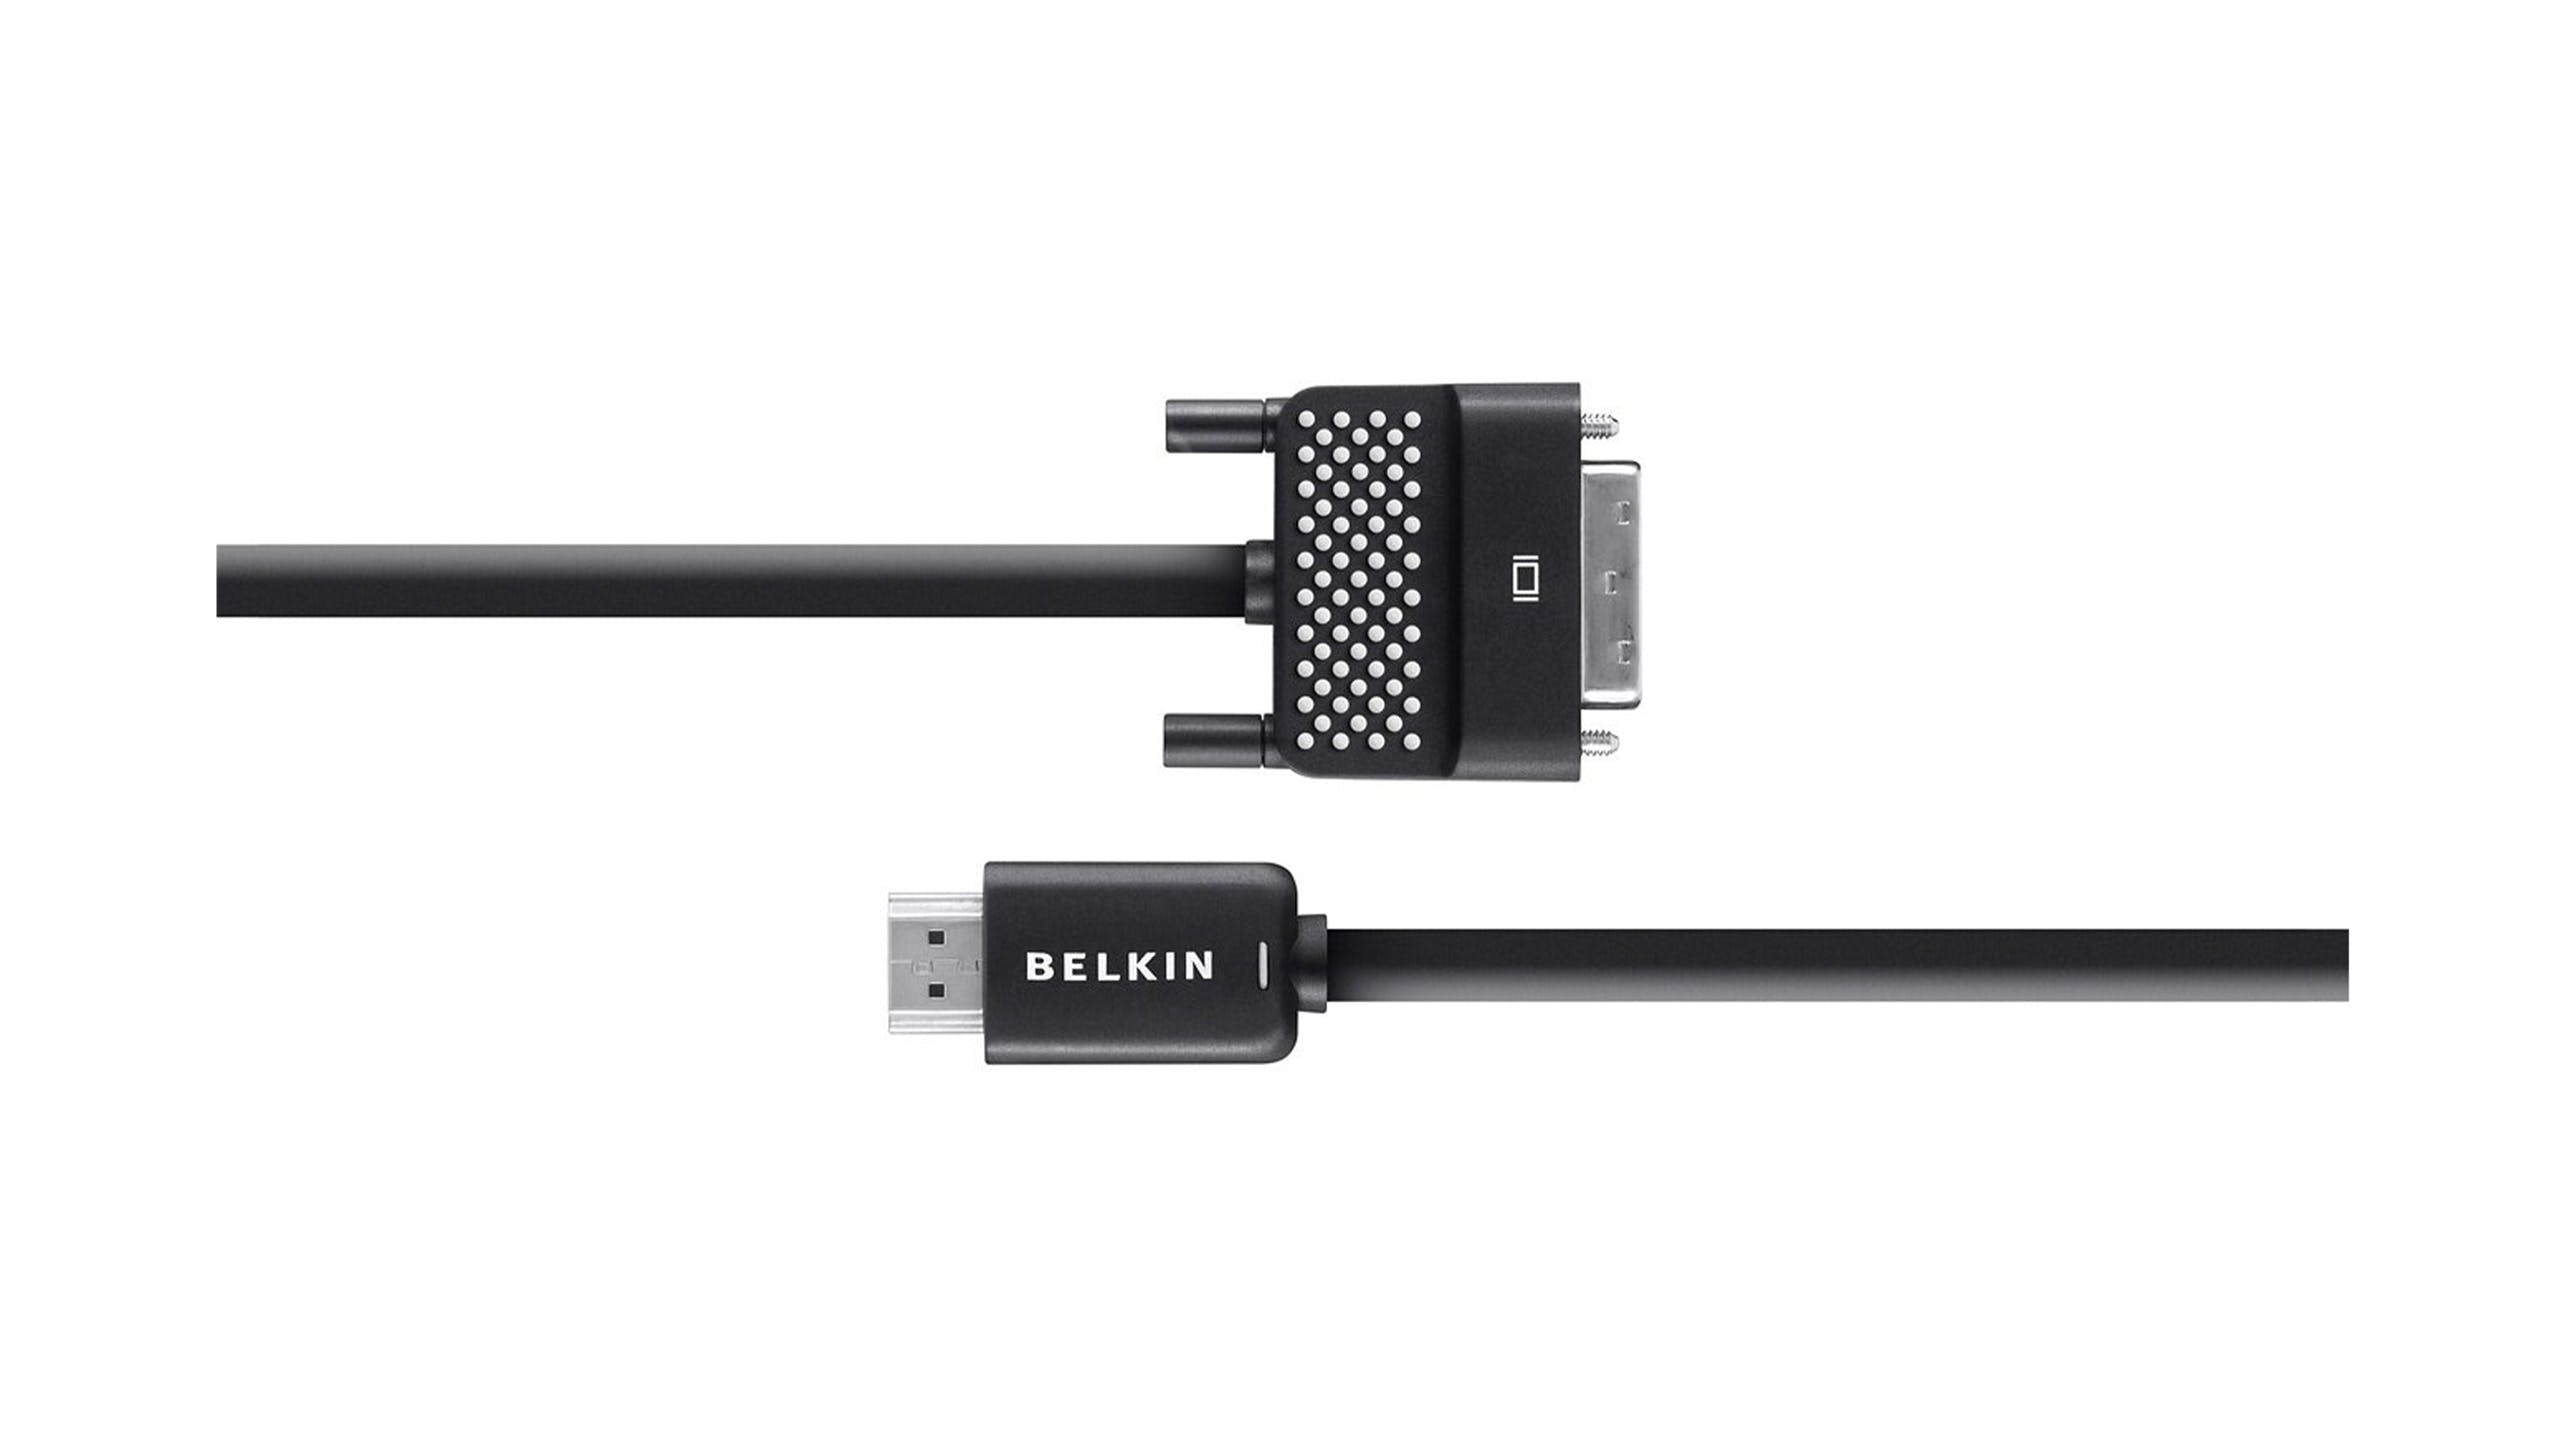 Belkin HDMI to DVI Cable - 1.8m